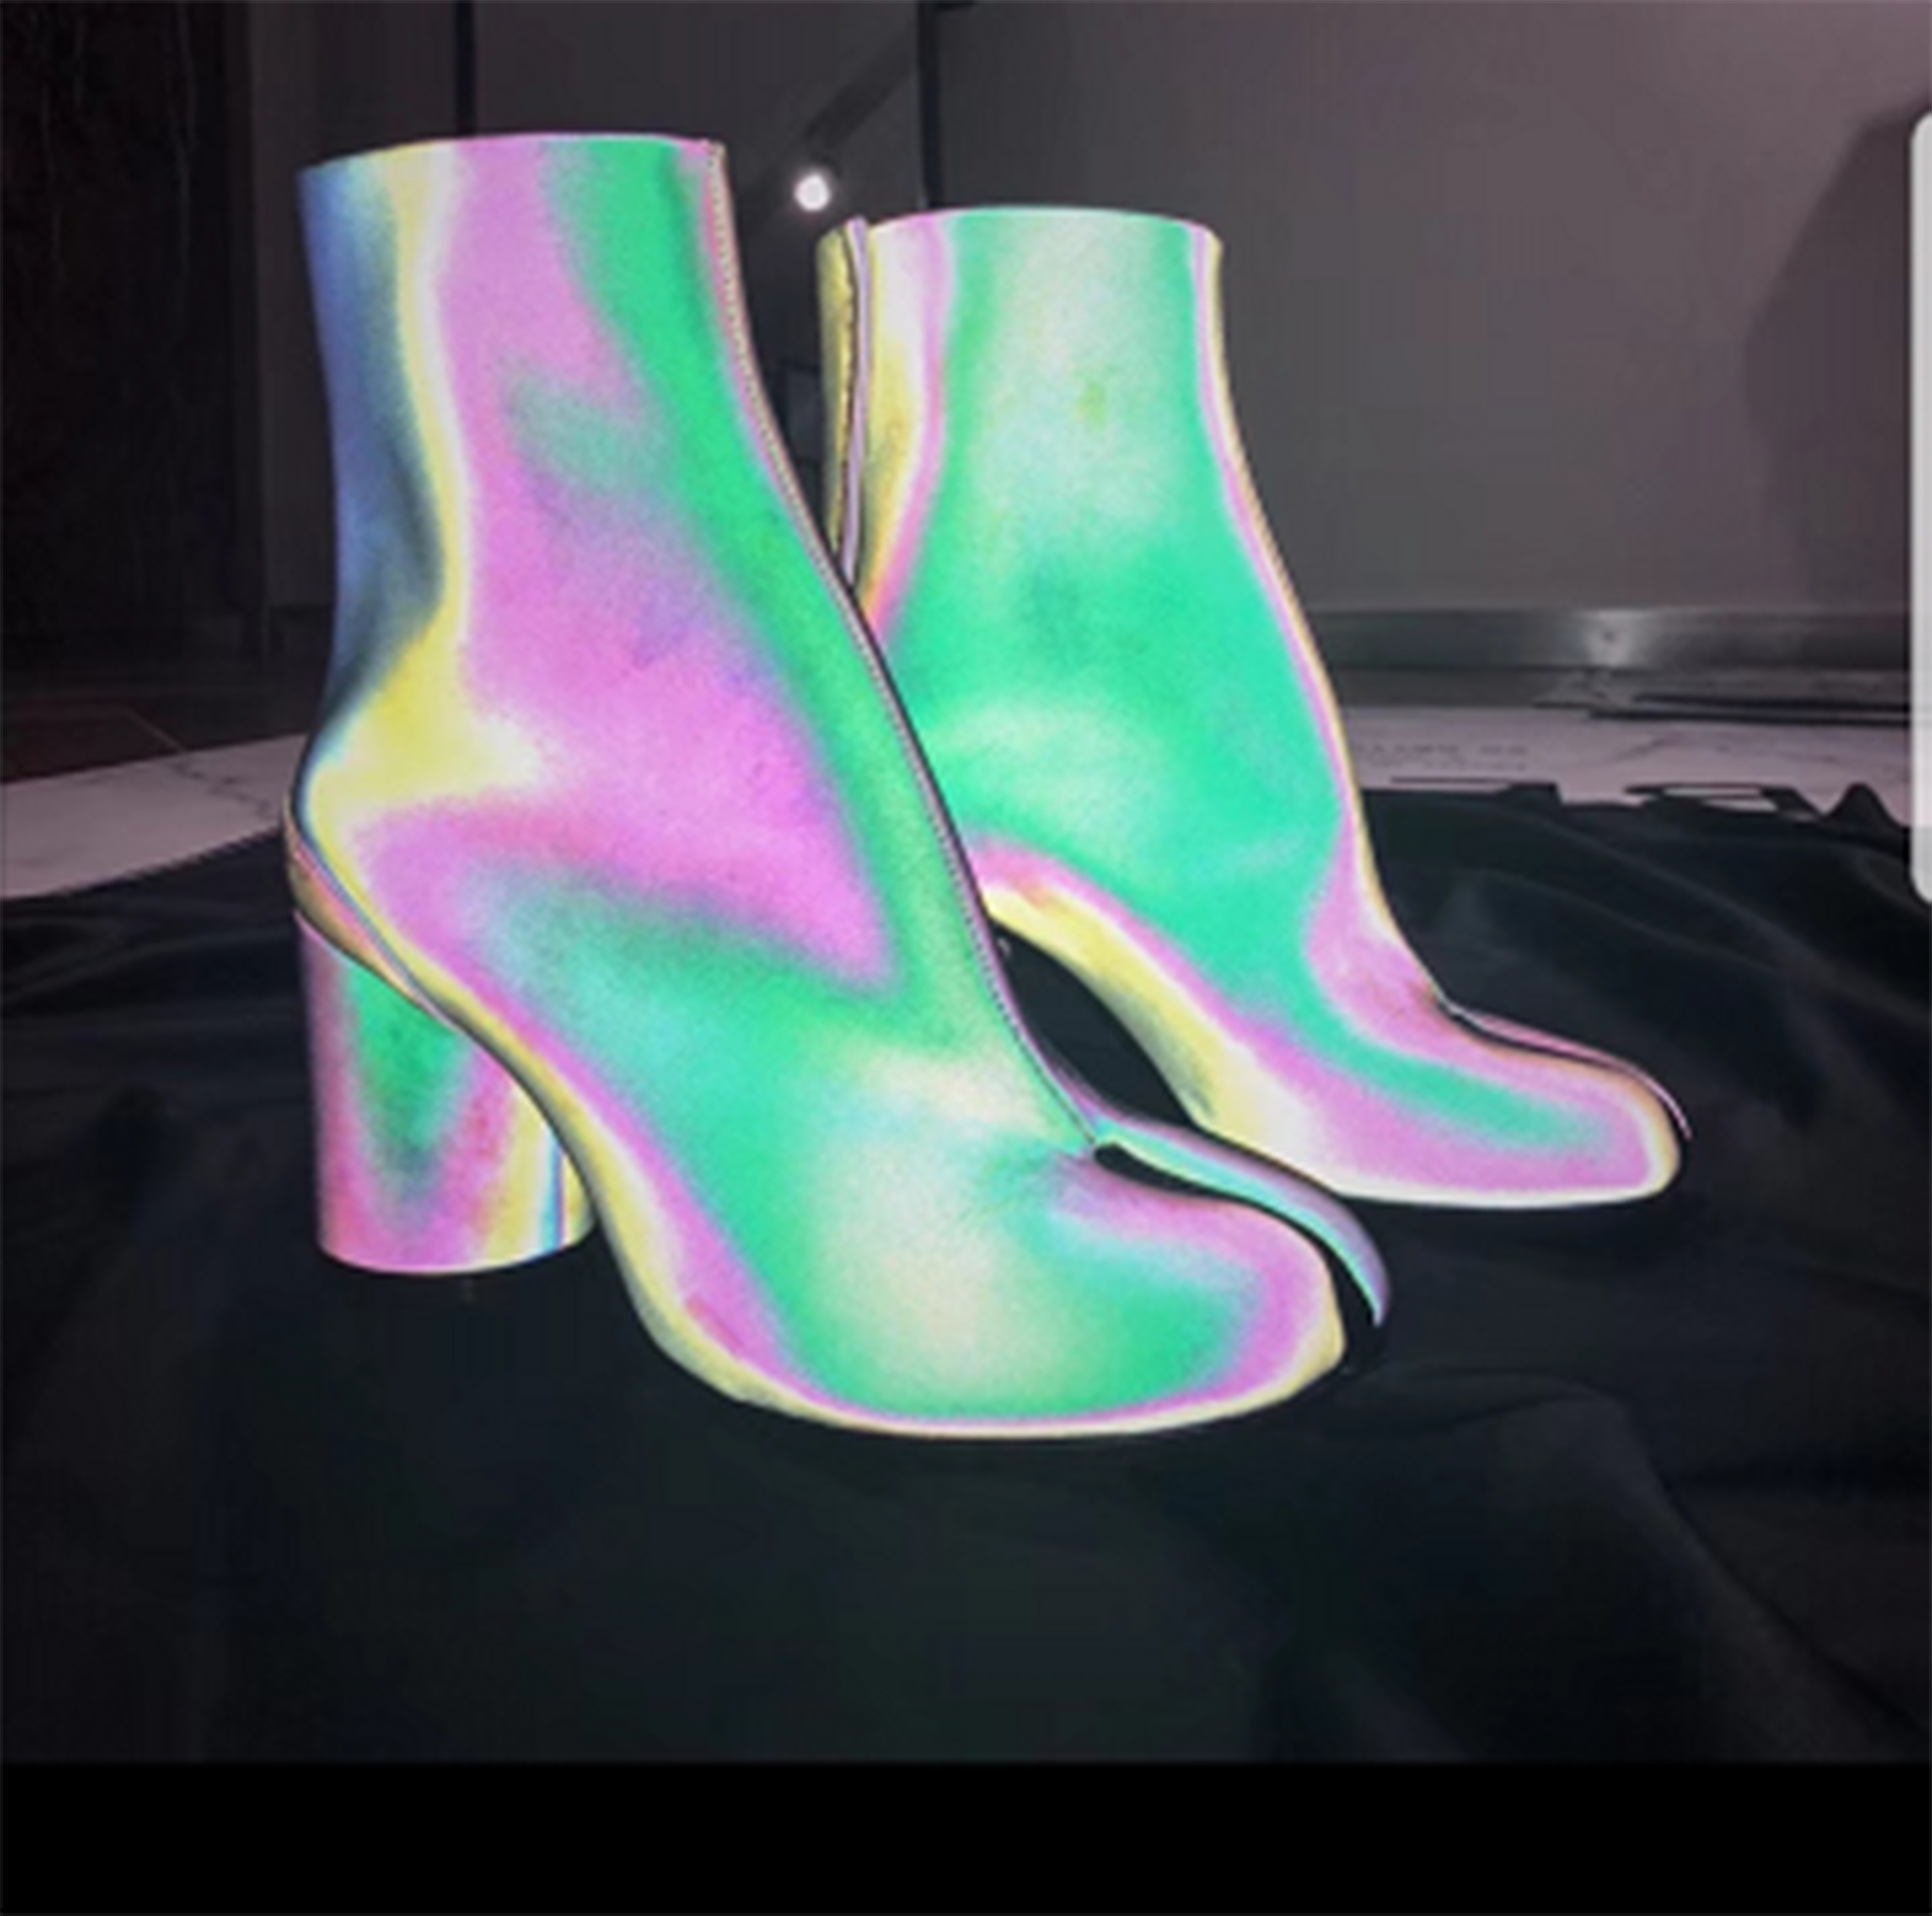 cdcb0eb48f HX-045 Latest Arrival Personalized Reflective Leather Tabi Ankle Boots